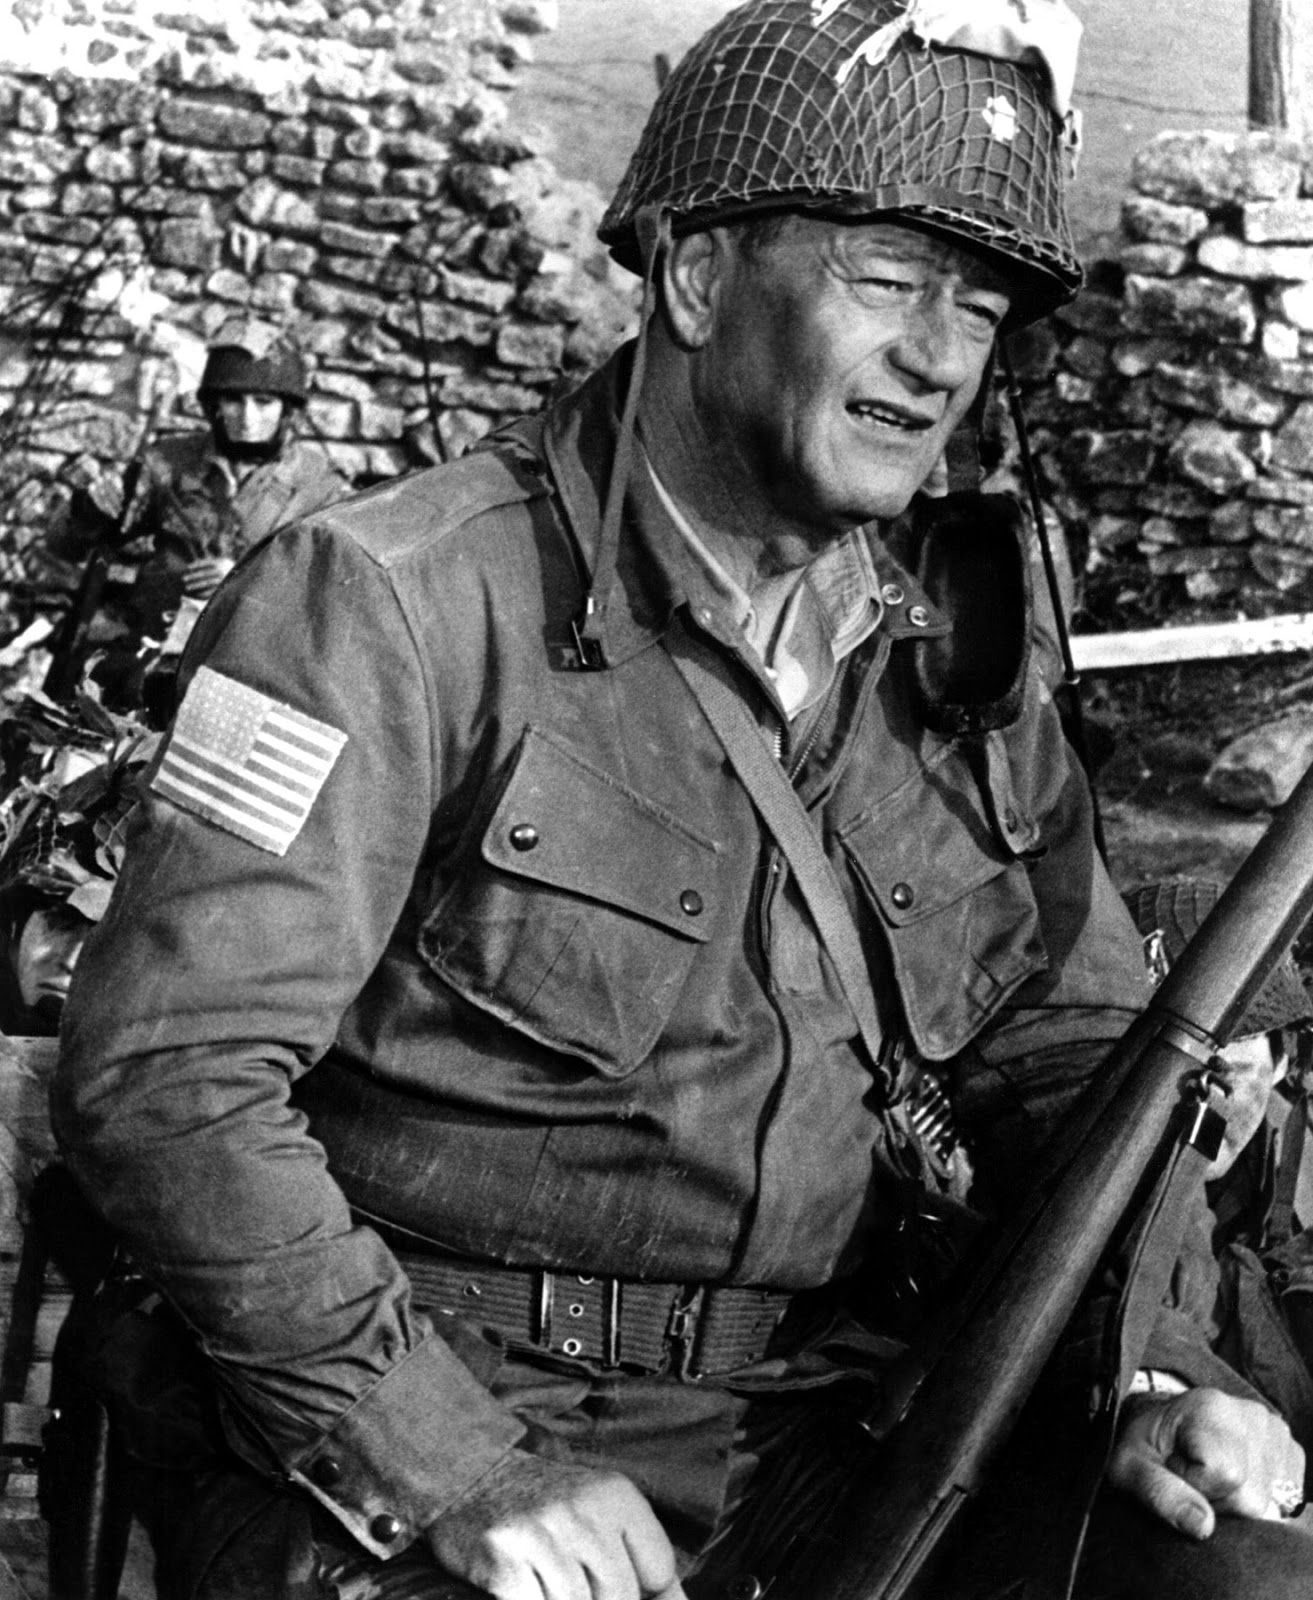 The Ace Black Blog: Movie Review: The Longest Day (1962)